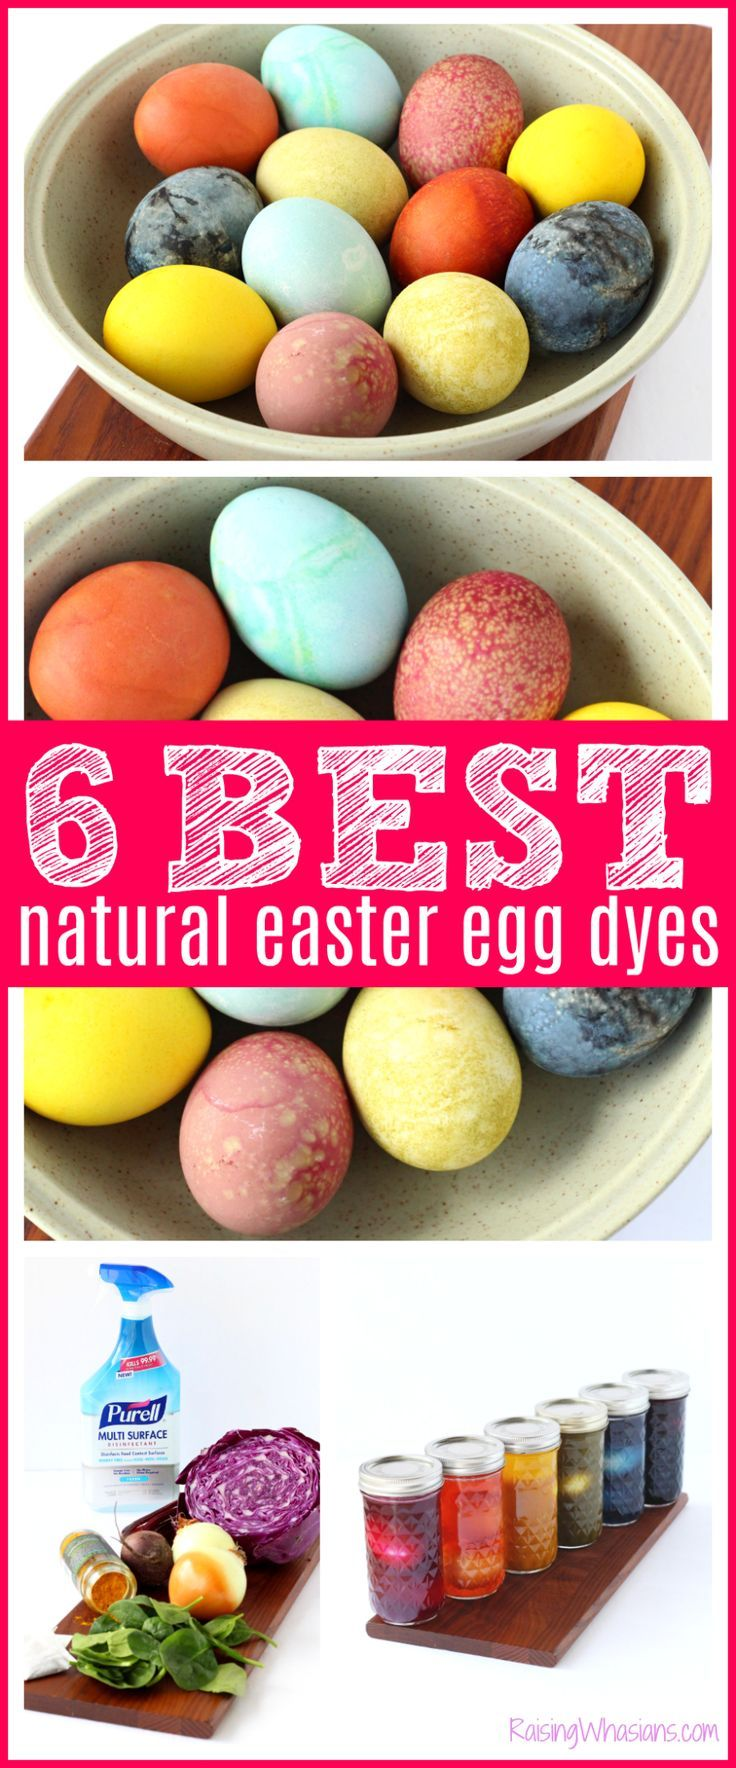 6 Easy Natural Easter Egg Dyes For The Most Vibrant Colors